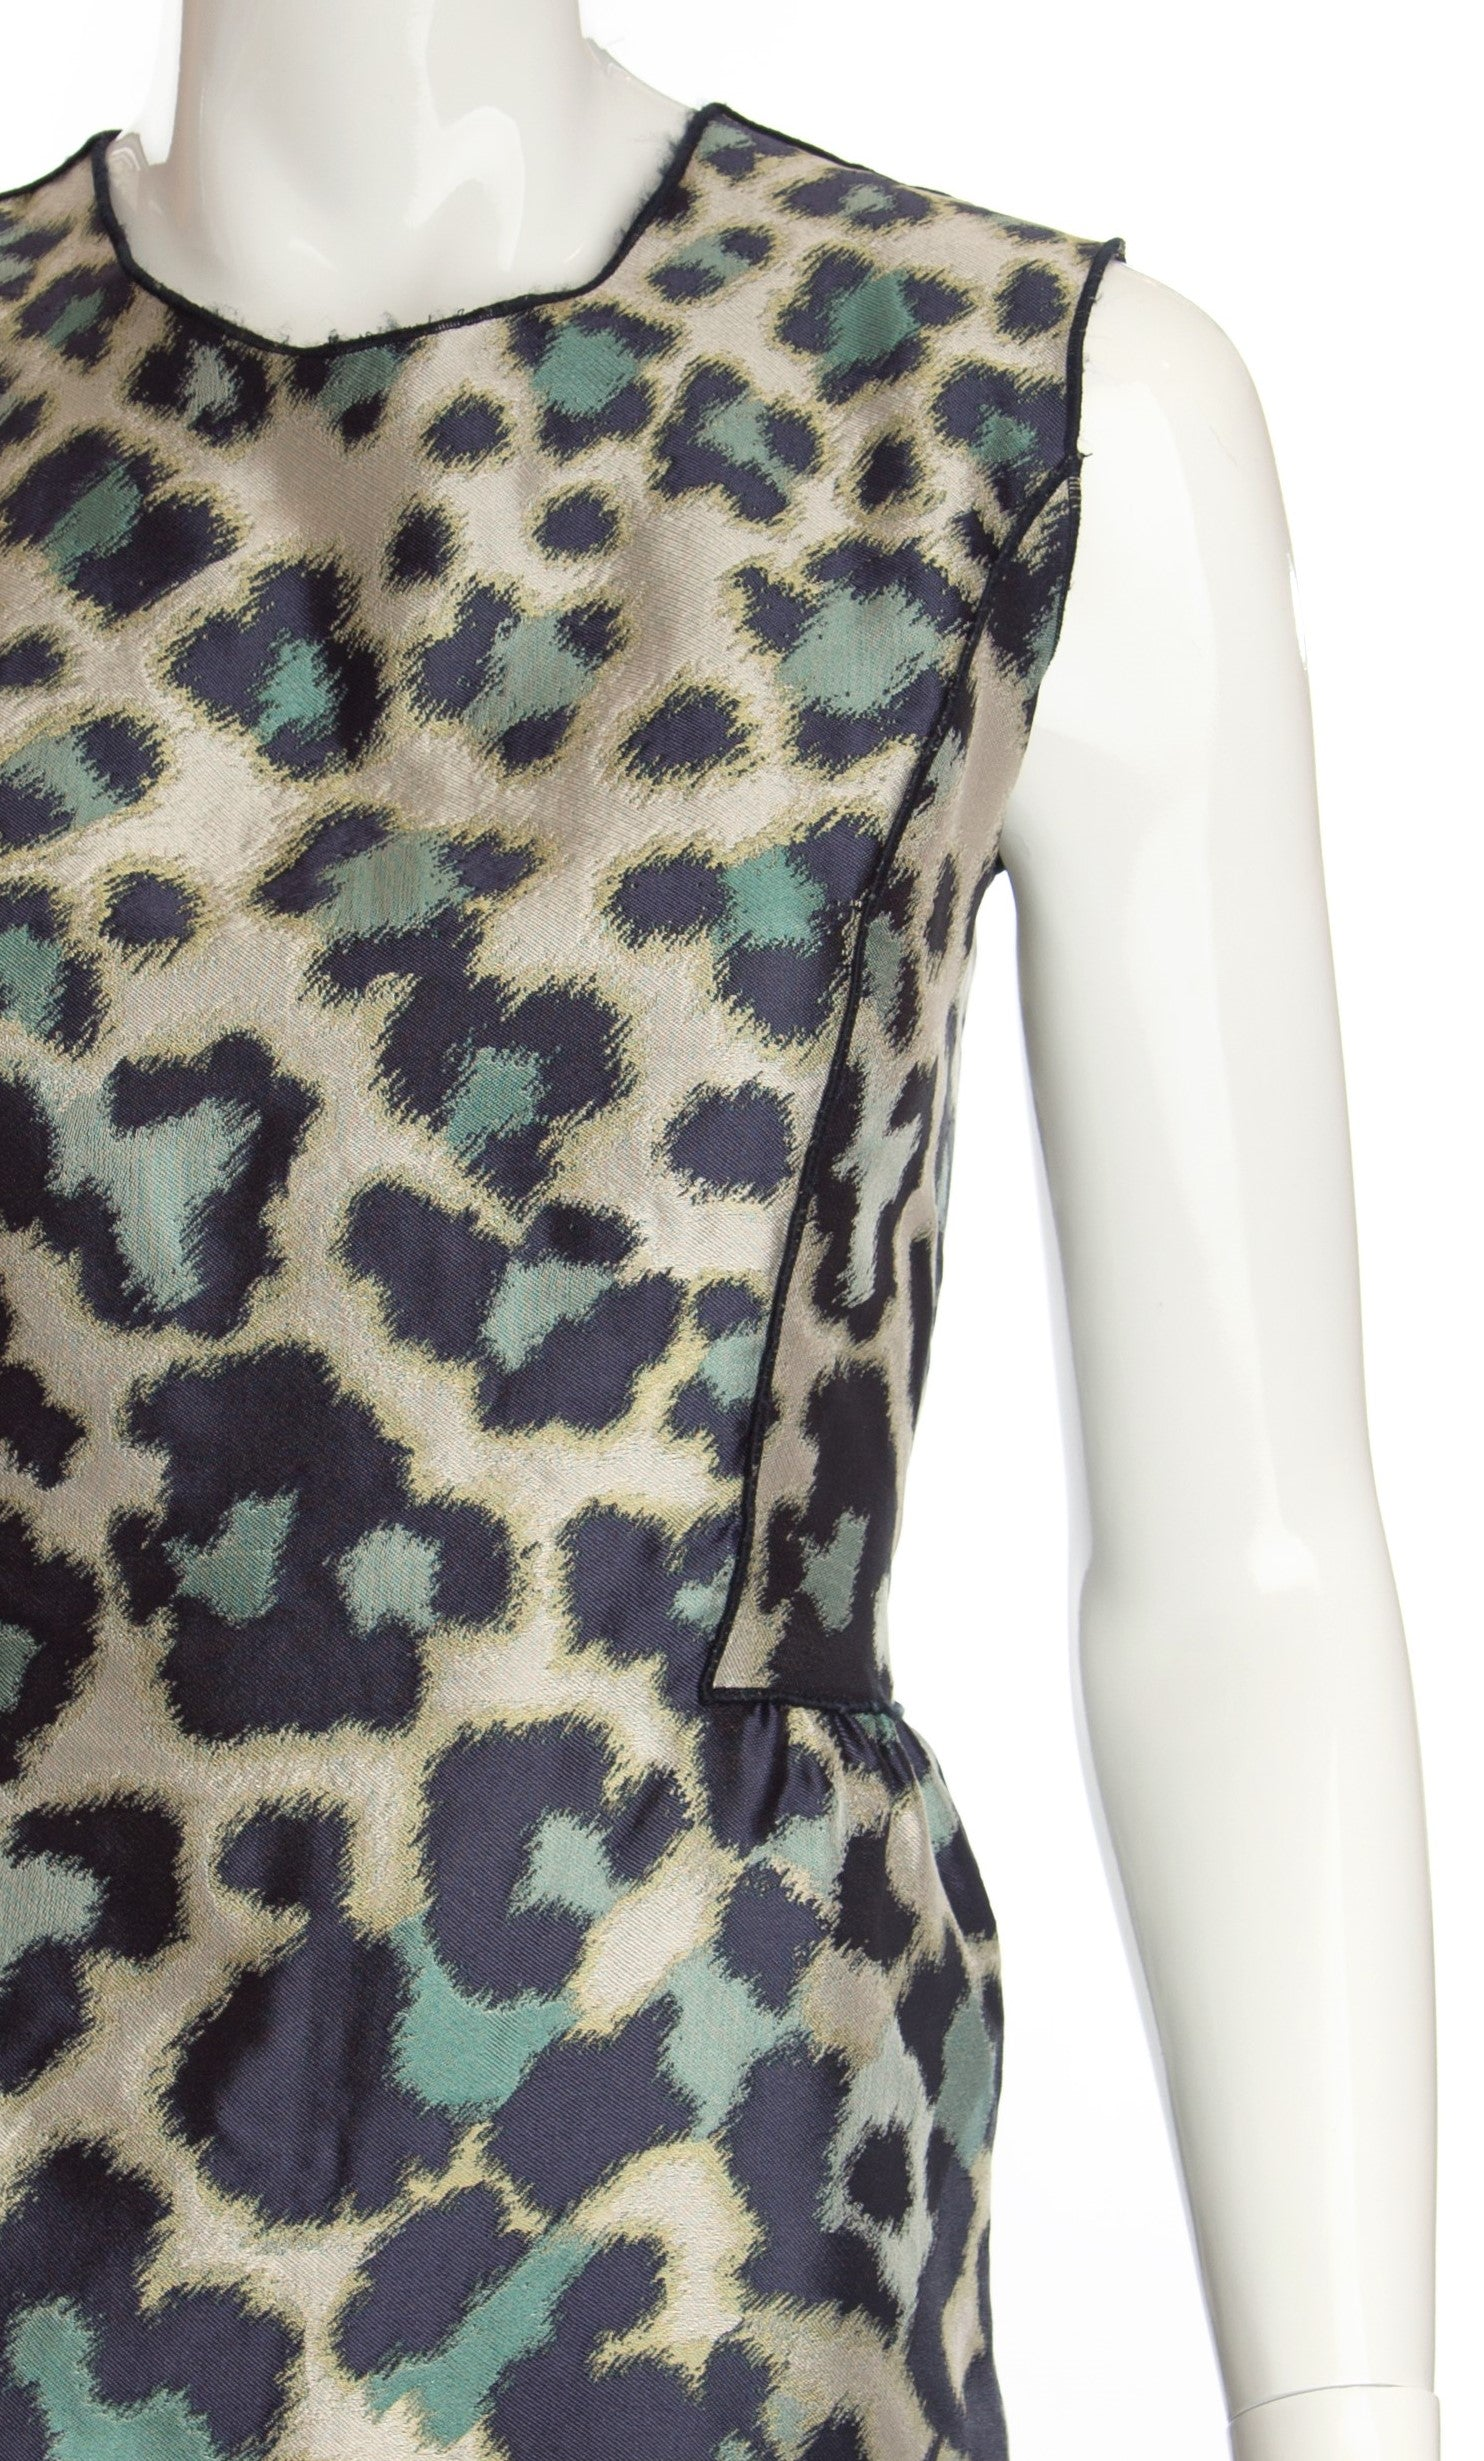 Derek Lam - Animal Print Peplum Top